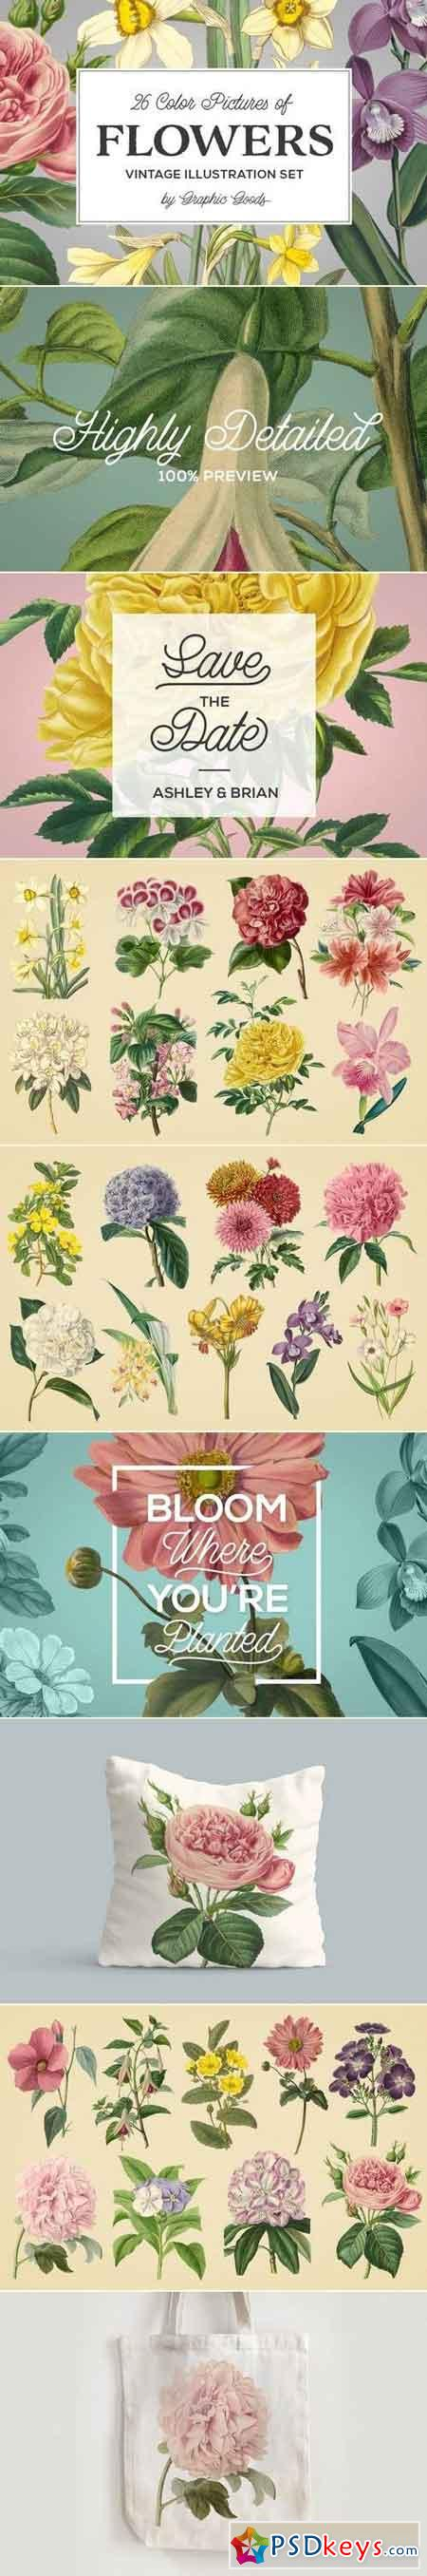 Vintage Illustrations of Flowers